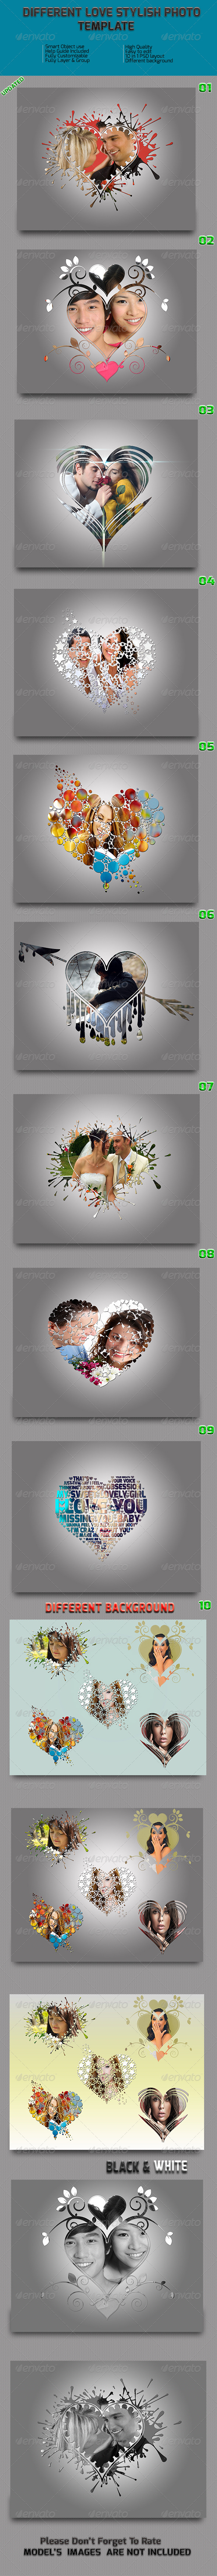 GraphicRiver Different Love Stylish Photo Frame Templates 8659246